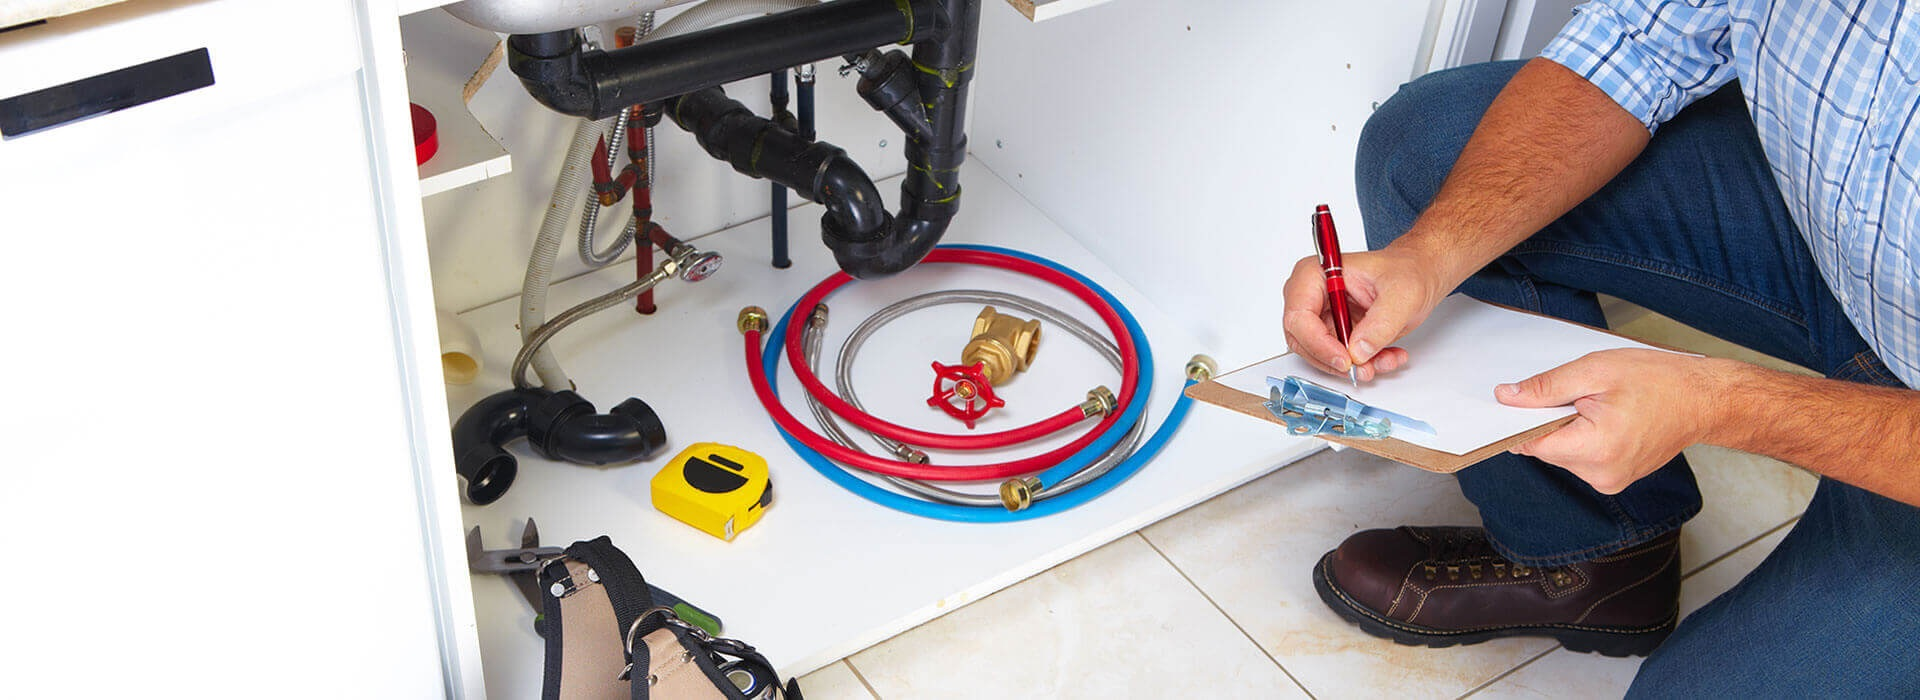 Fast, reliable and smooth plumbing services at affordable price